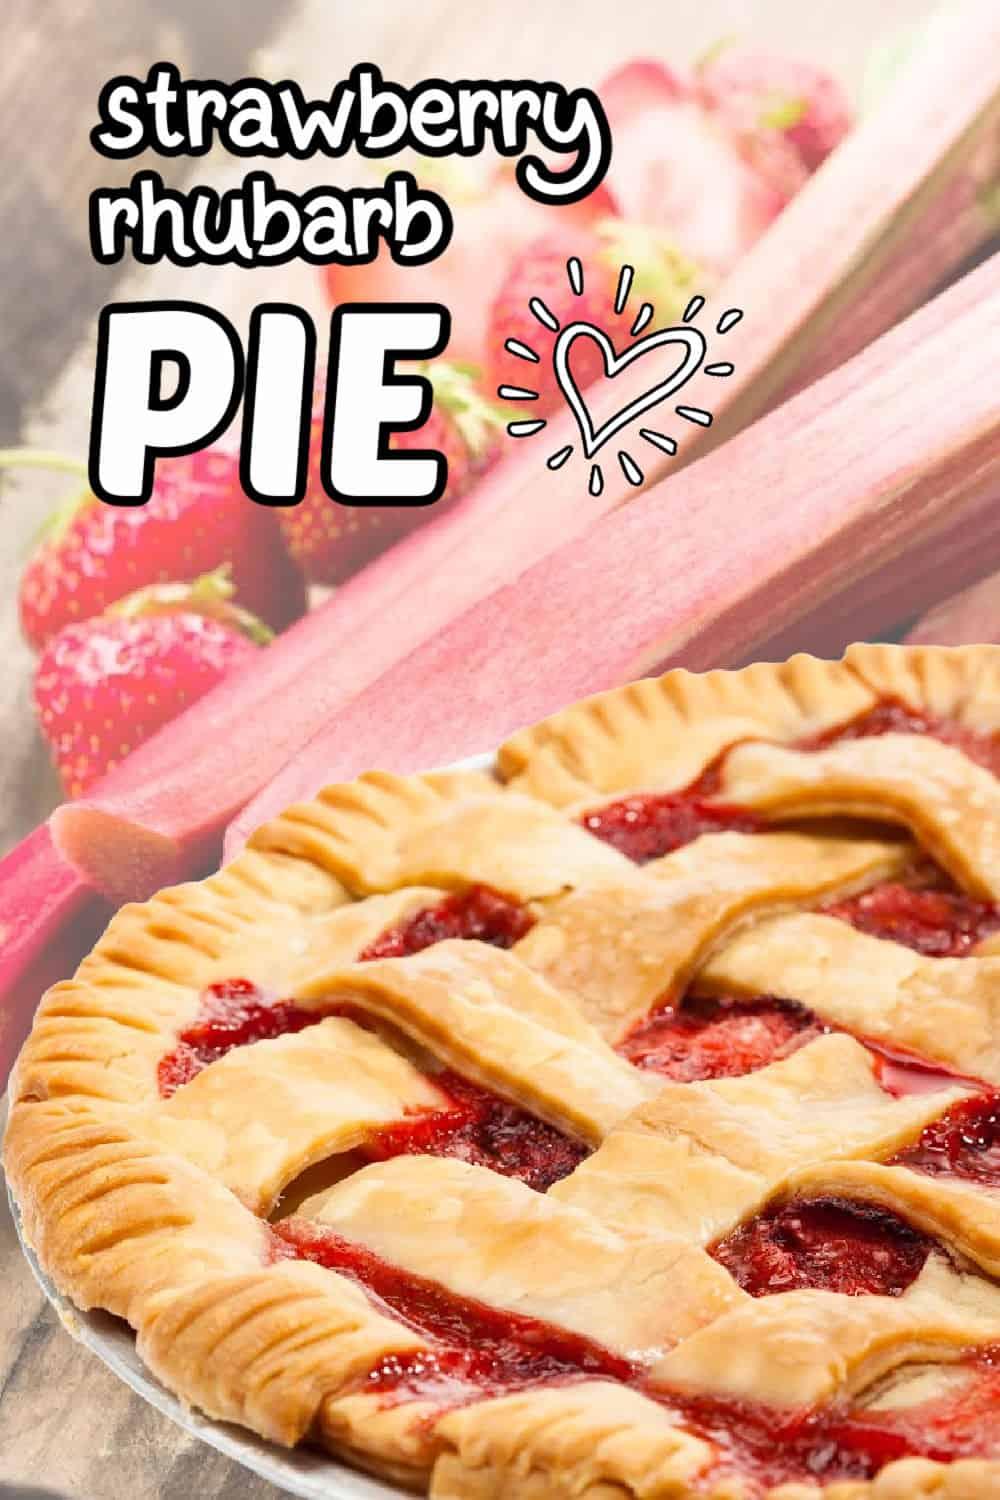 background image is picked strawberries and rhubarb with a lattice topped strawberry rhubarb pie in the foreground